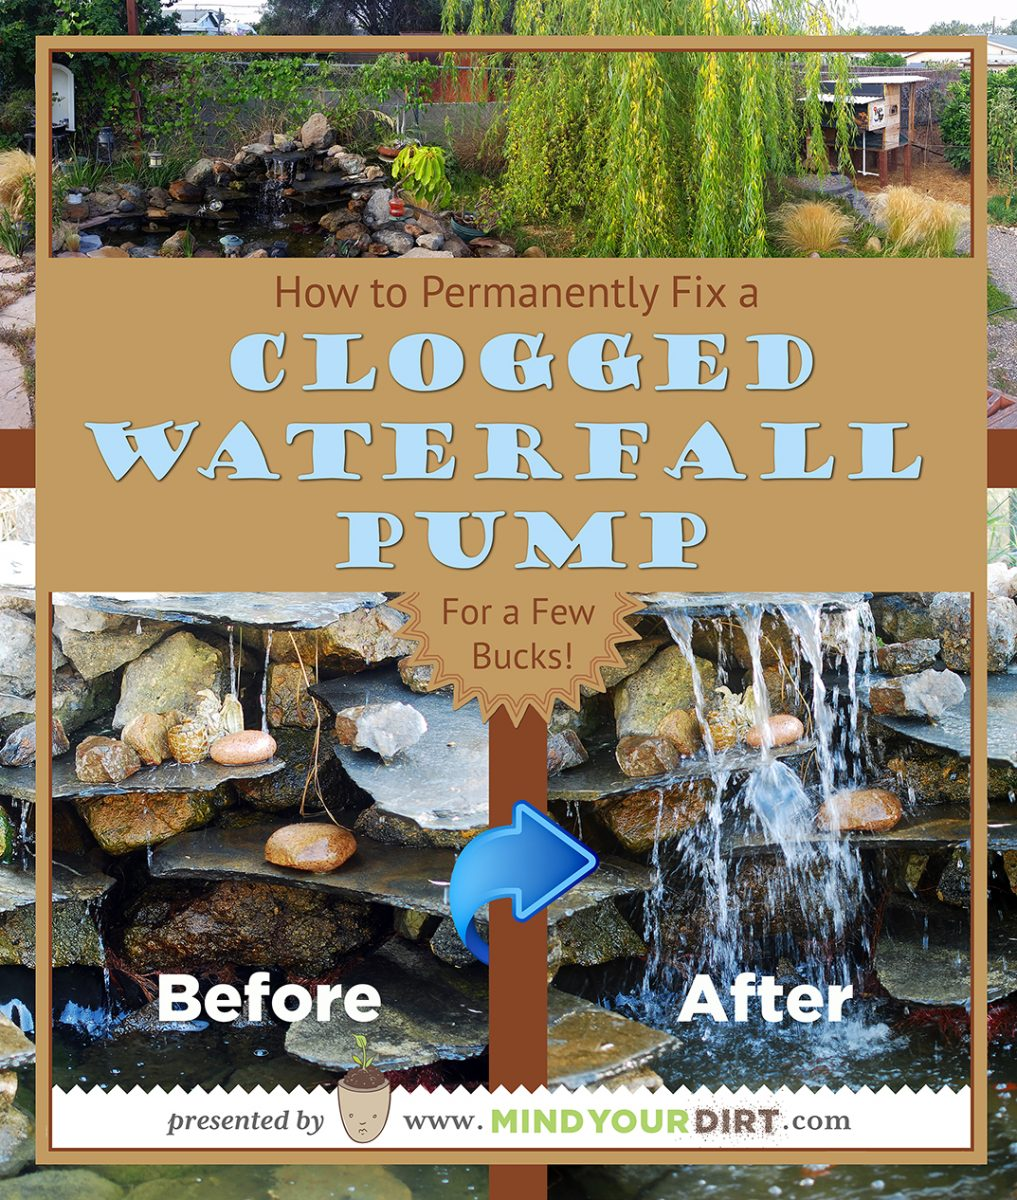 The @#&*+$% Waterfall Pump is Clogged Again!